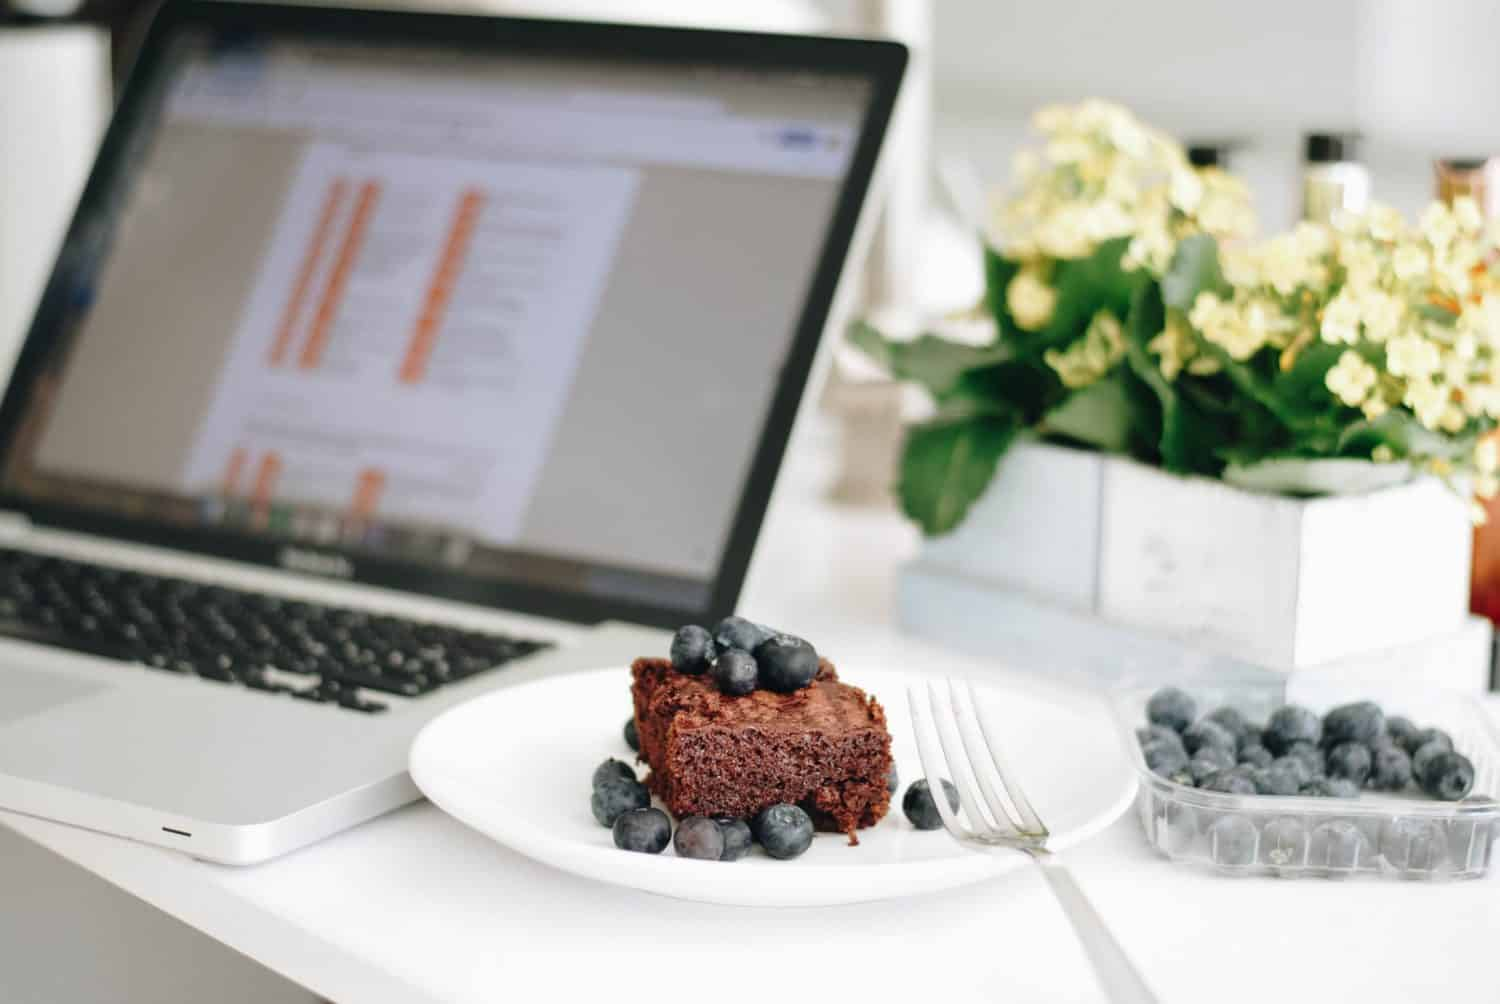 food and a laptop